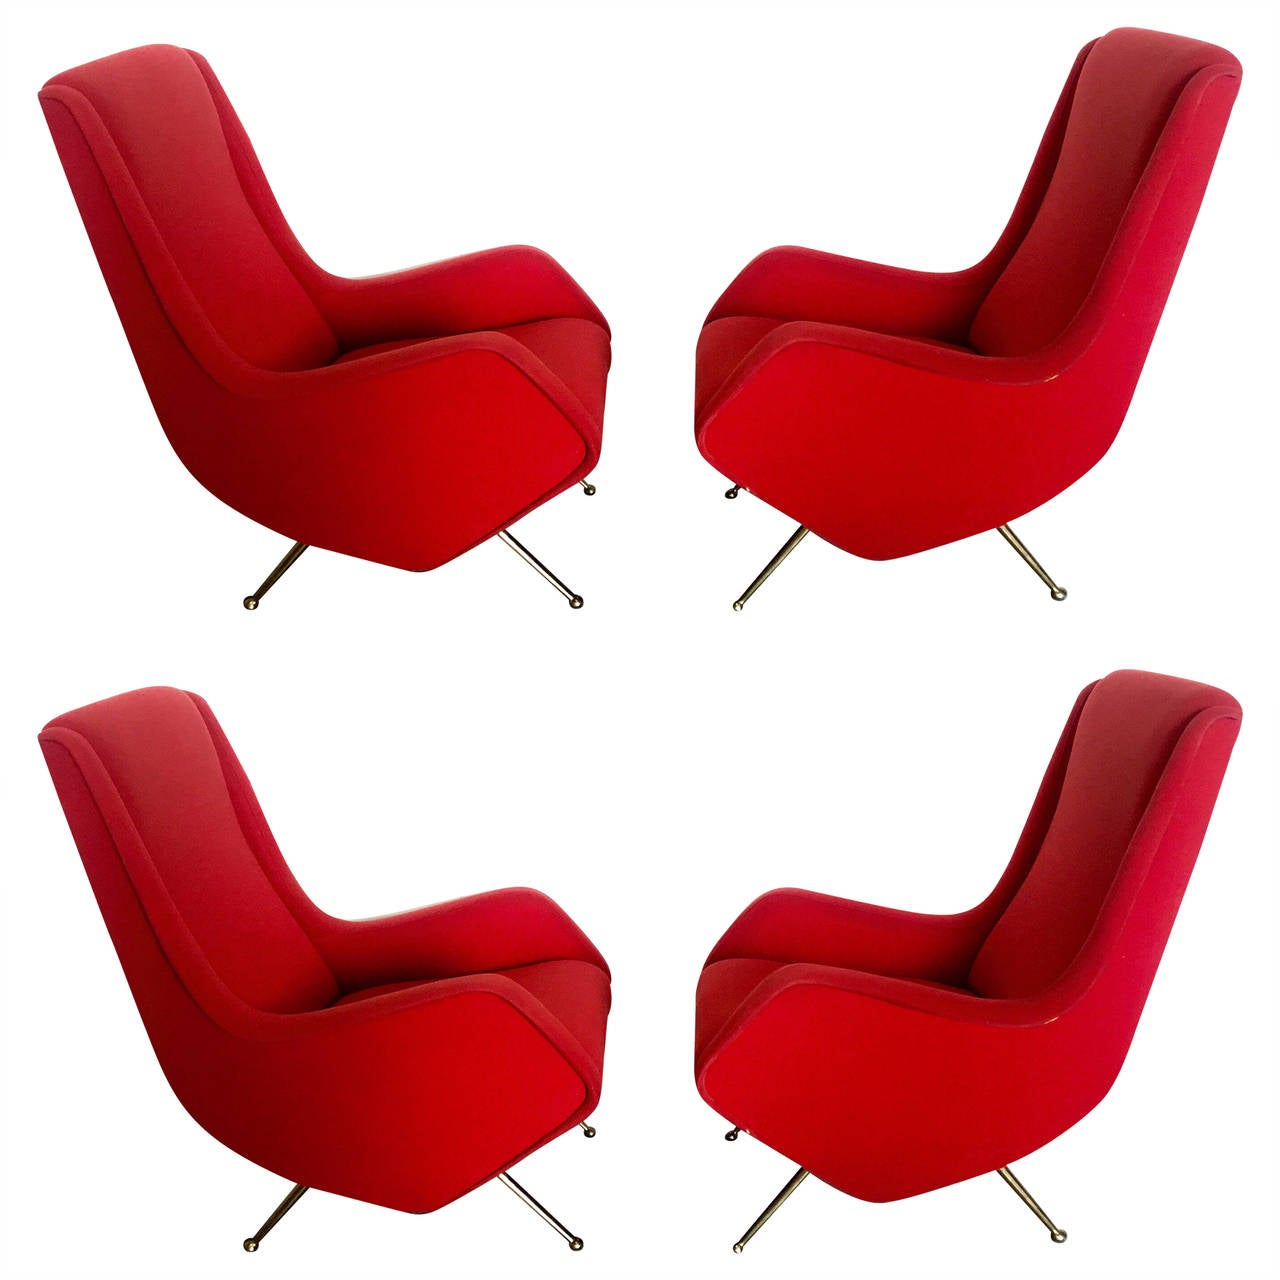 Set of four armchairs by isa bergamo 1950 at 1stdibs for Isa arredamenti